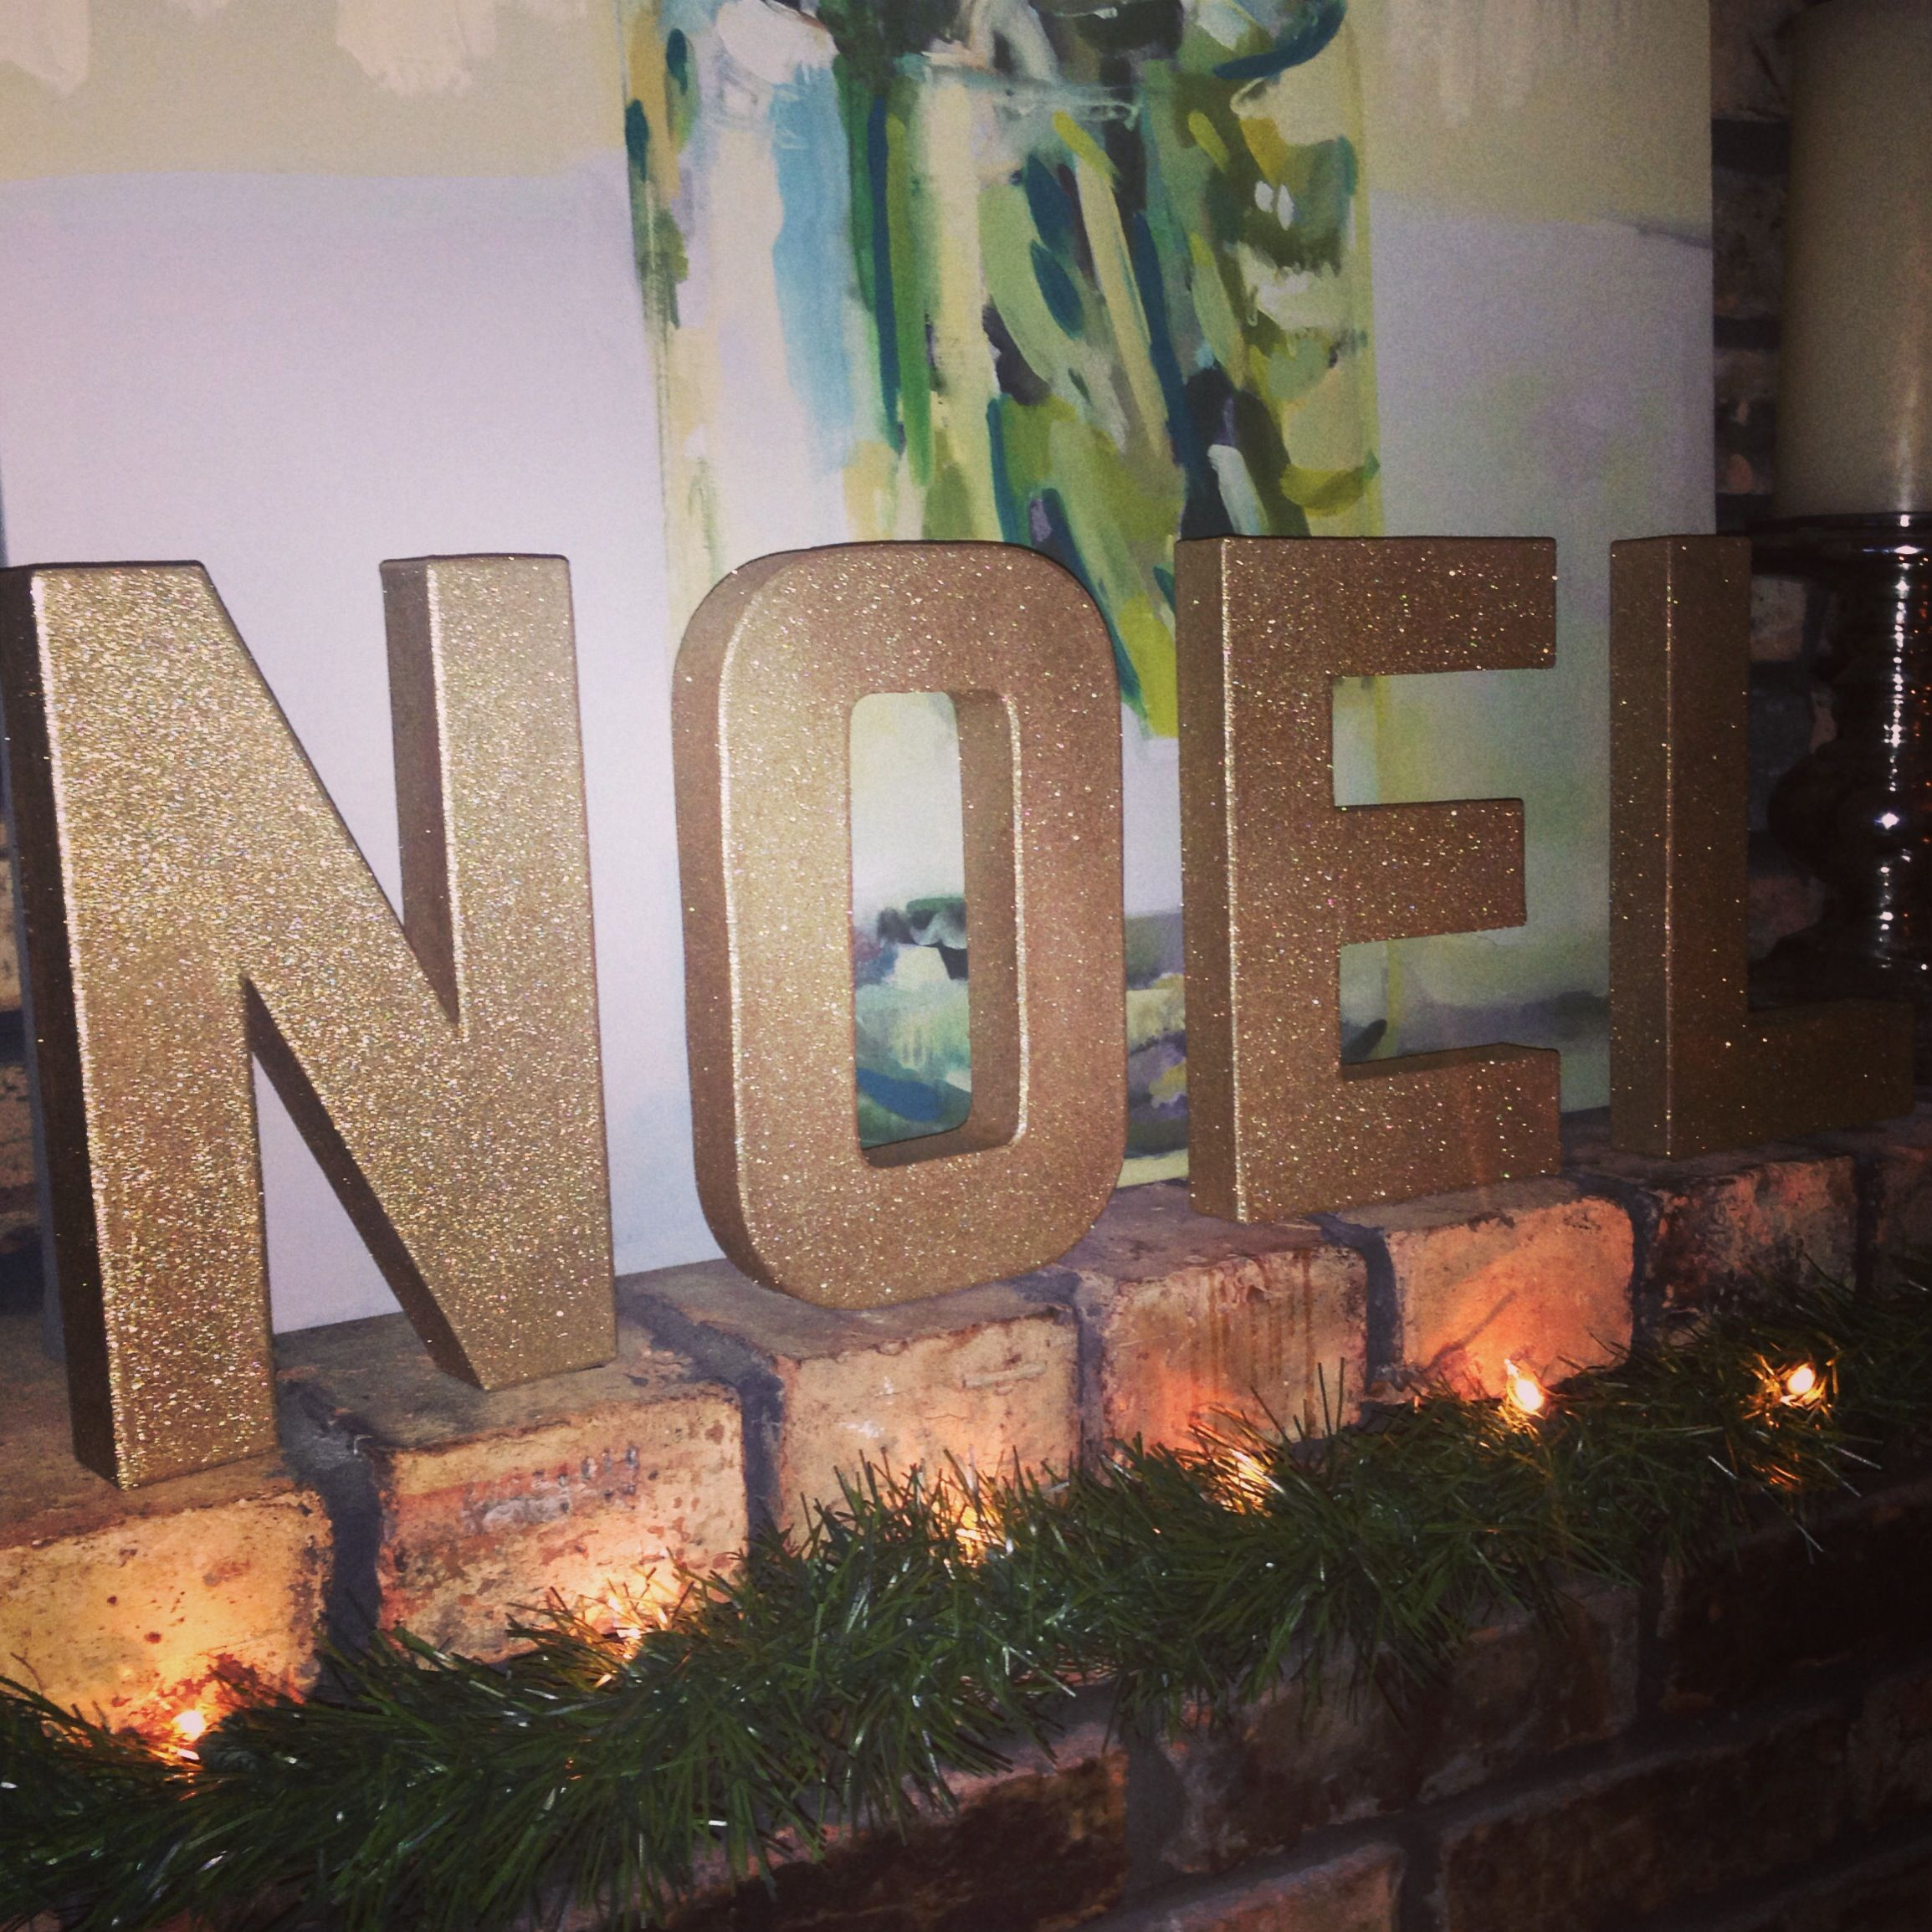 Hobby Lobby Letters With Gold Glitter Spray Paint Noel Gold Glitter Spray Paint Hobby Lobby Letters Glitter Spray Paint